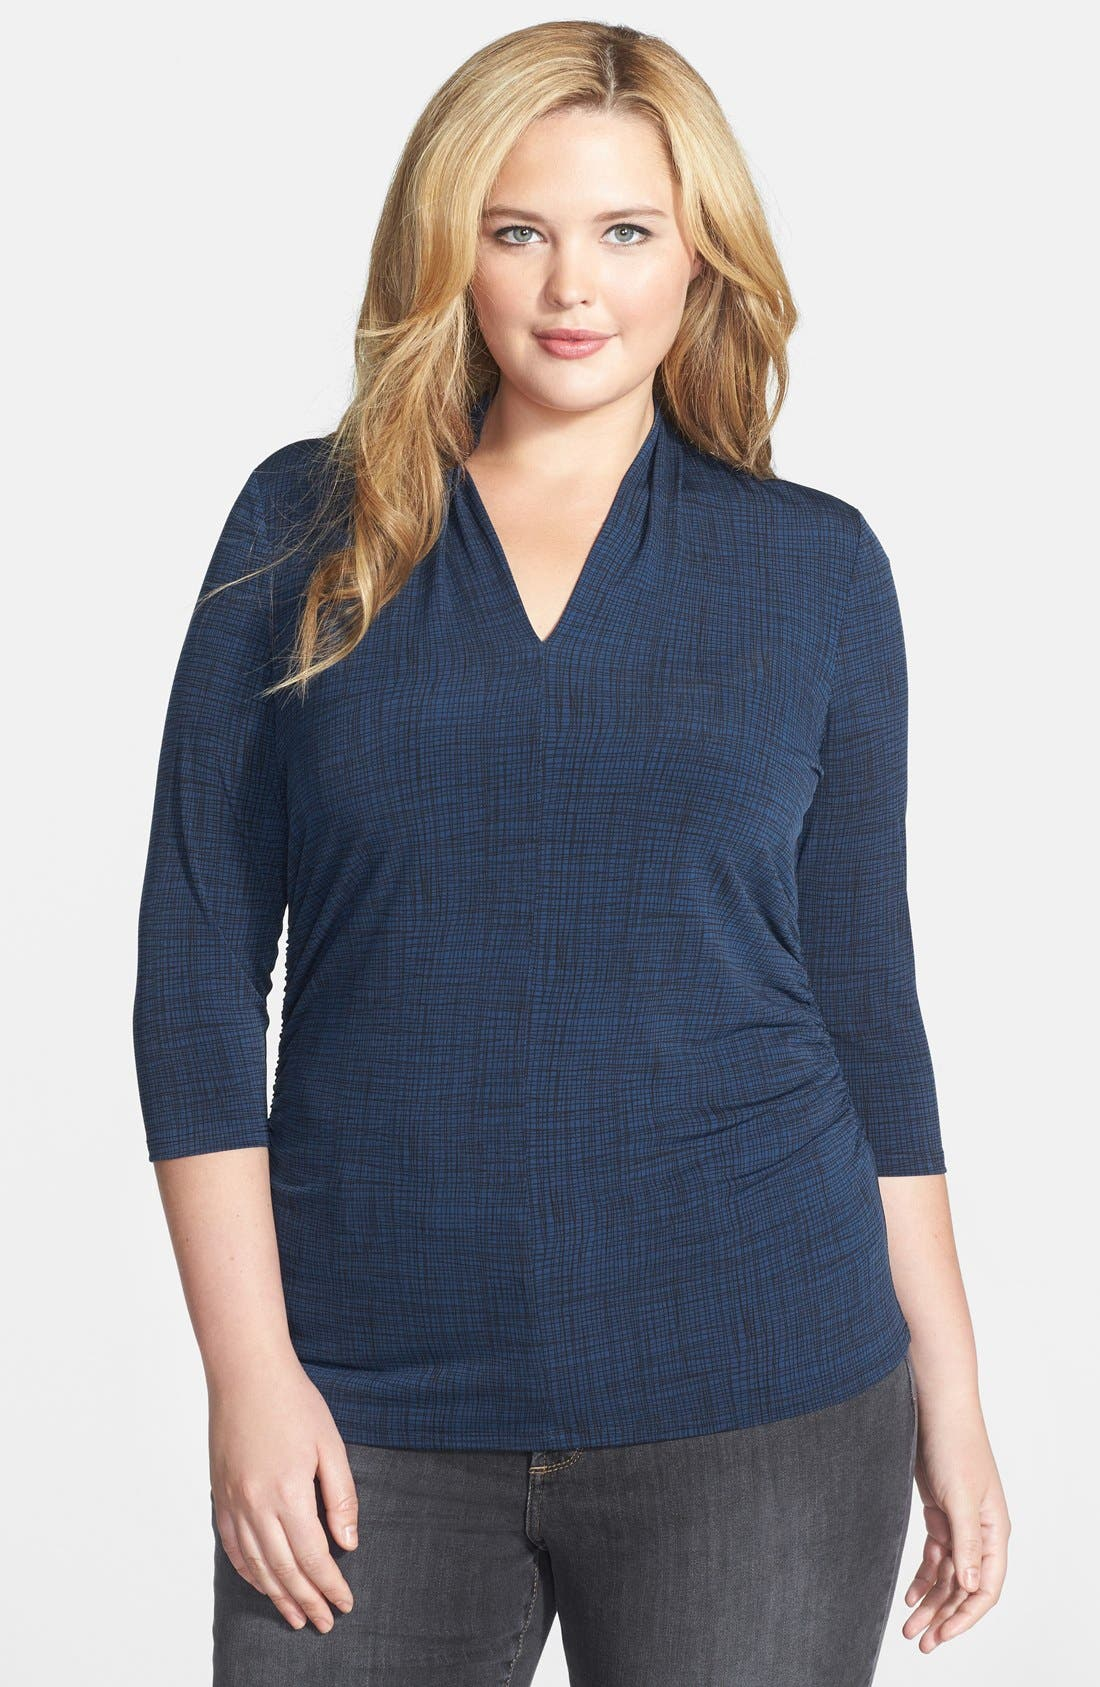 Main Image - Vince Camuto Crosshatch Print V-Neck Top (Plus Size)